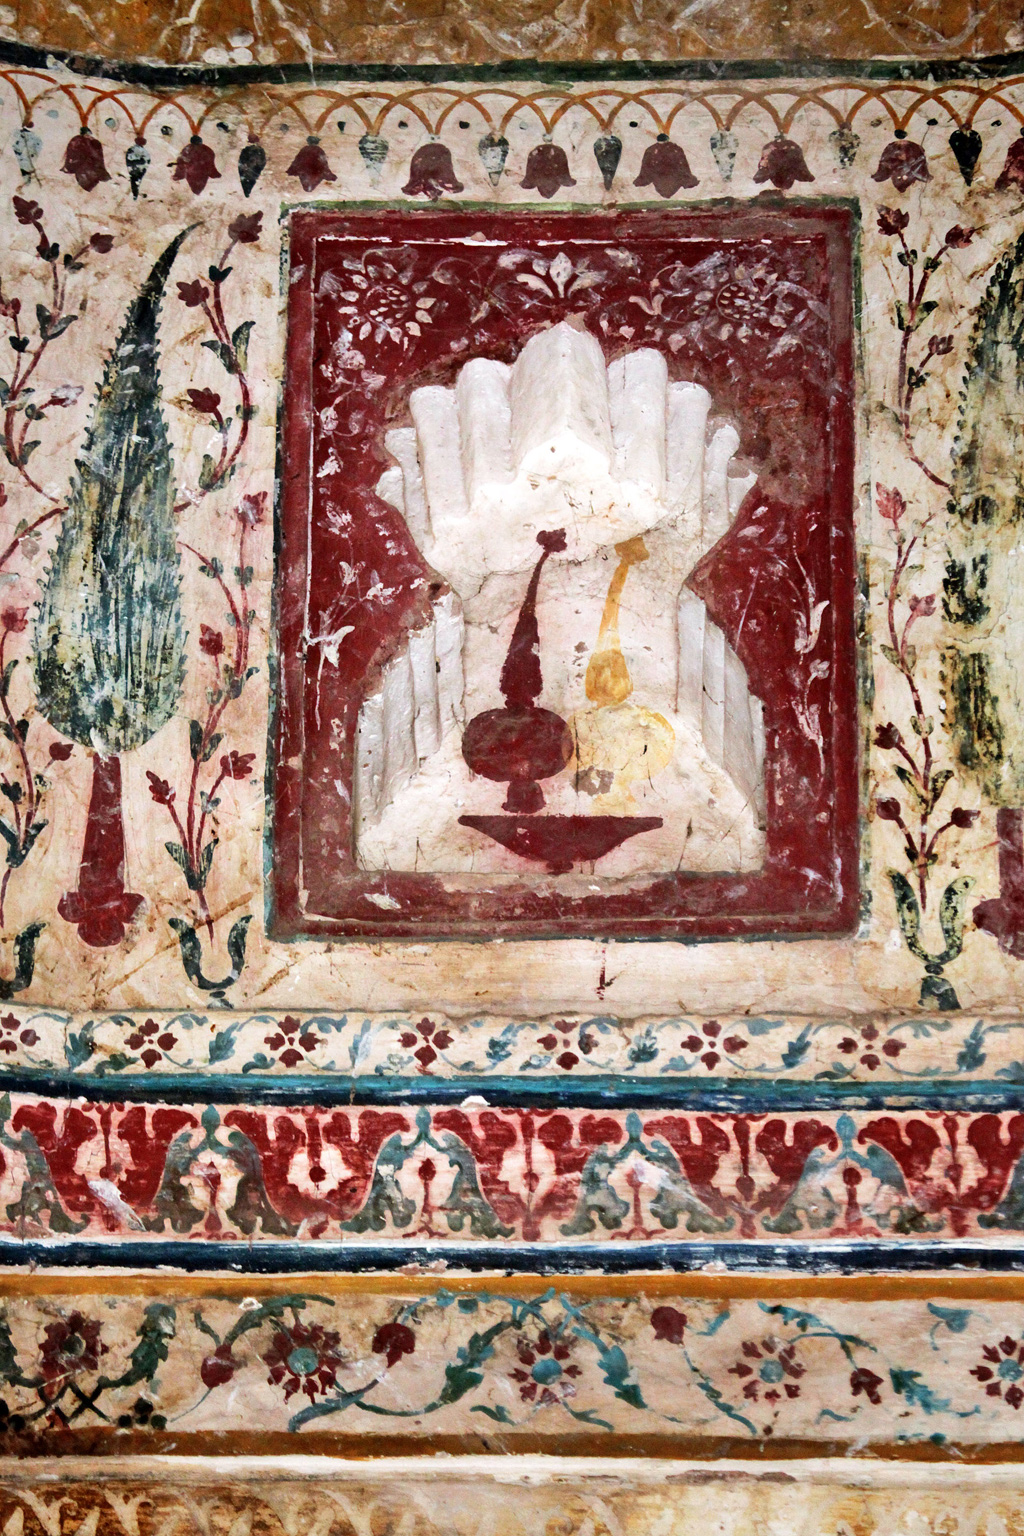 4. The technique of creating frescoes was quite elaborate—colours were painted in layers and scratched to reveal intricate multi-hued designs